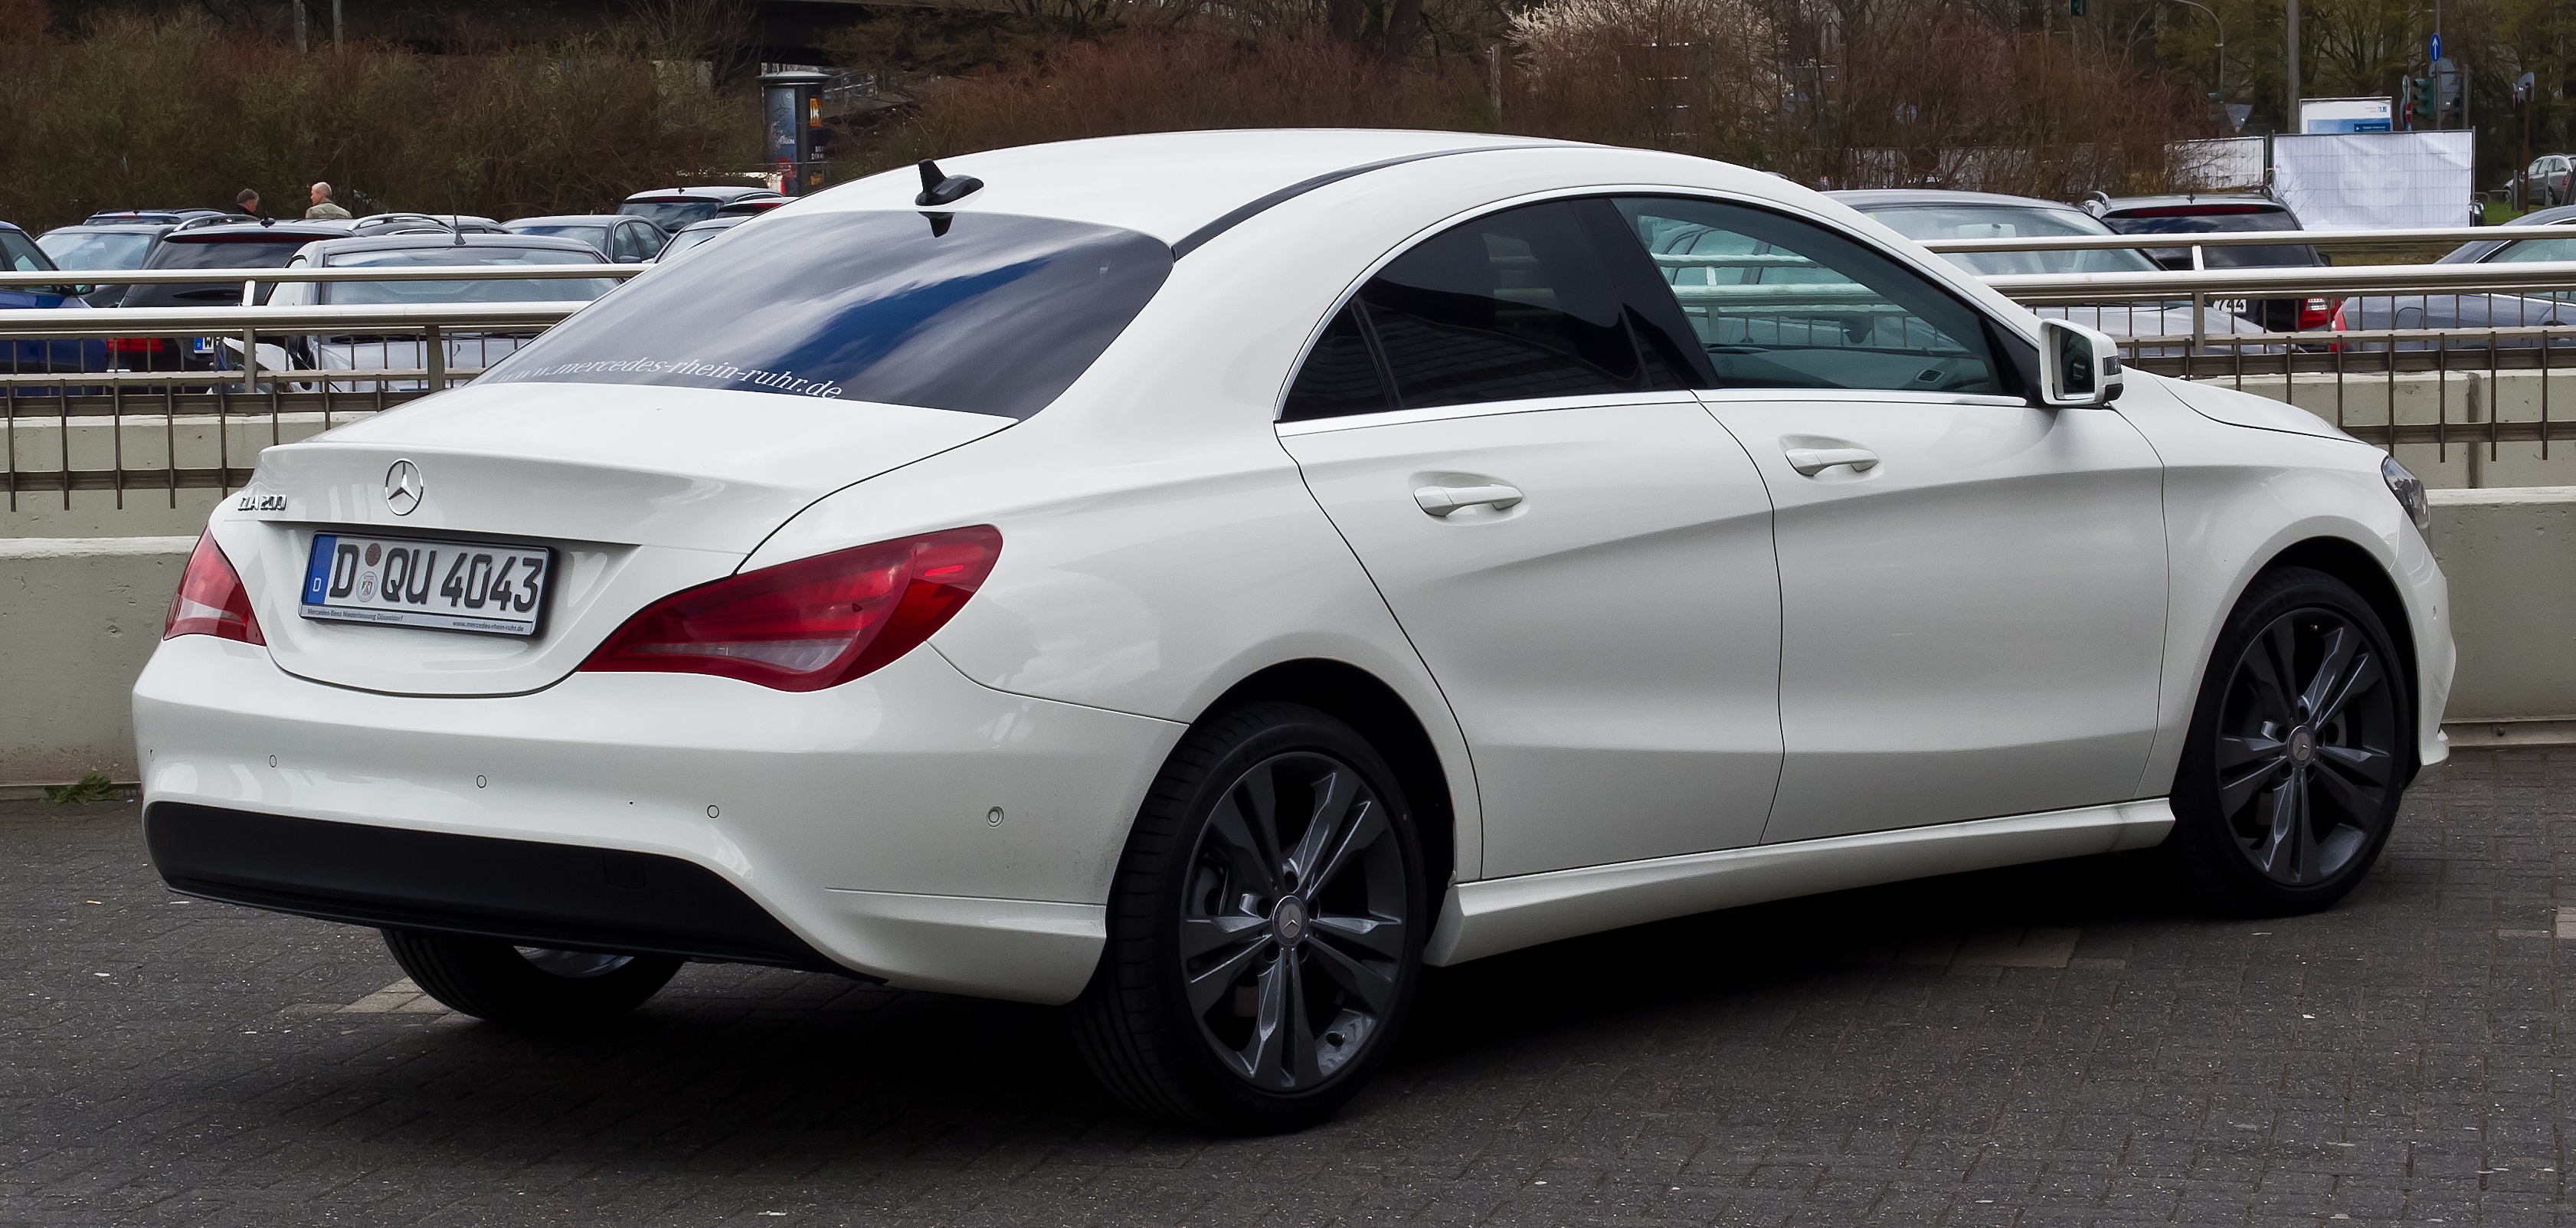 Mercedes Benz Cla >> Mercedes Benz Kelas Cla Wikipedia Bahasa Indonesia